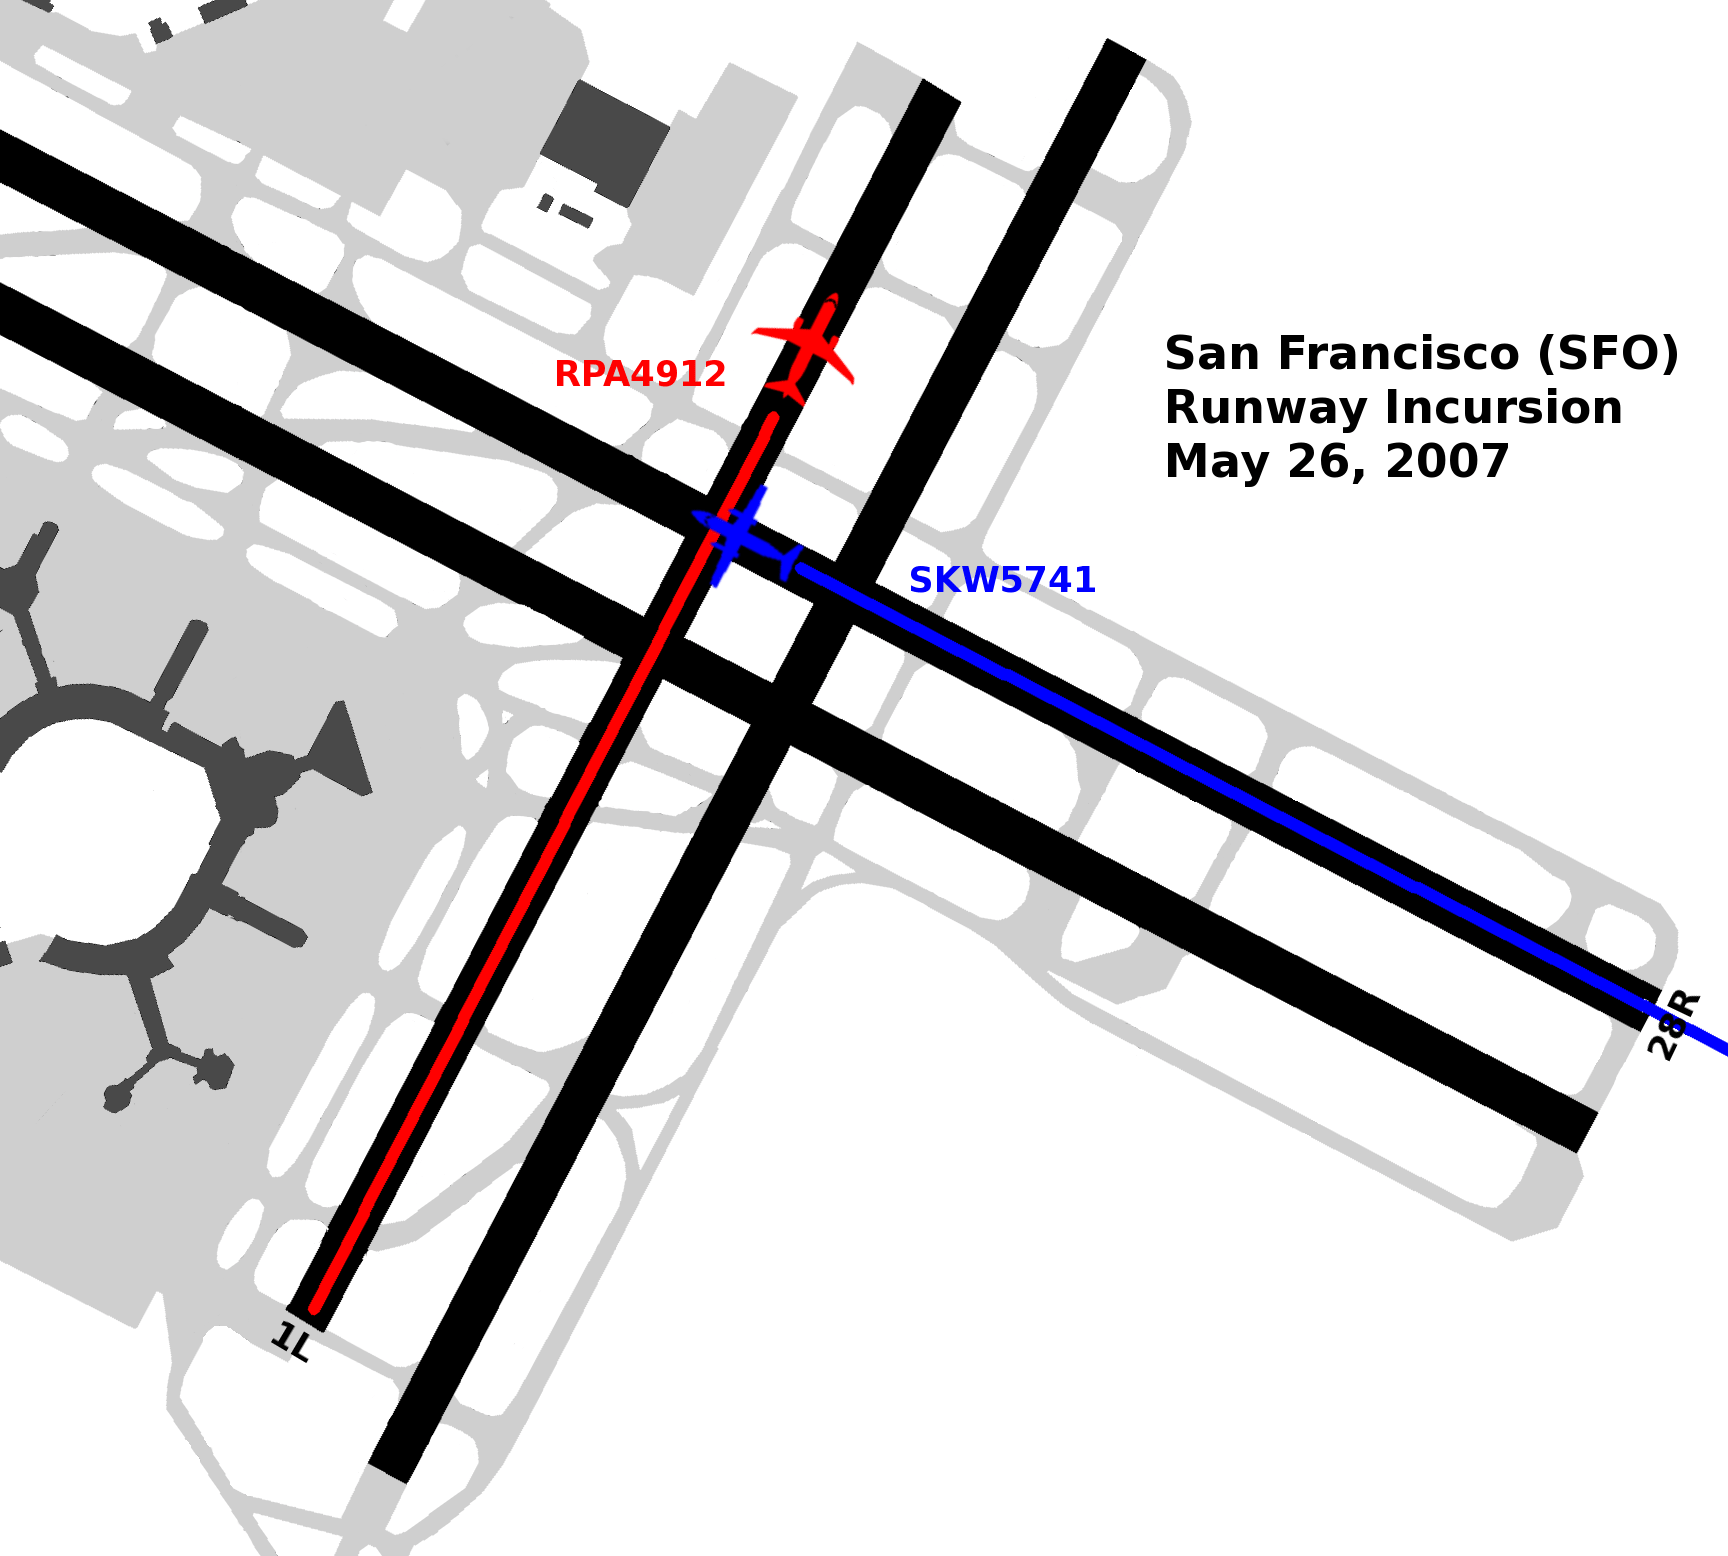 Visual representation of the runway incursion at SFO in 2007